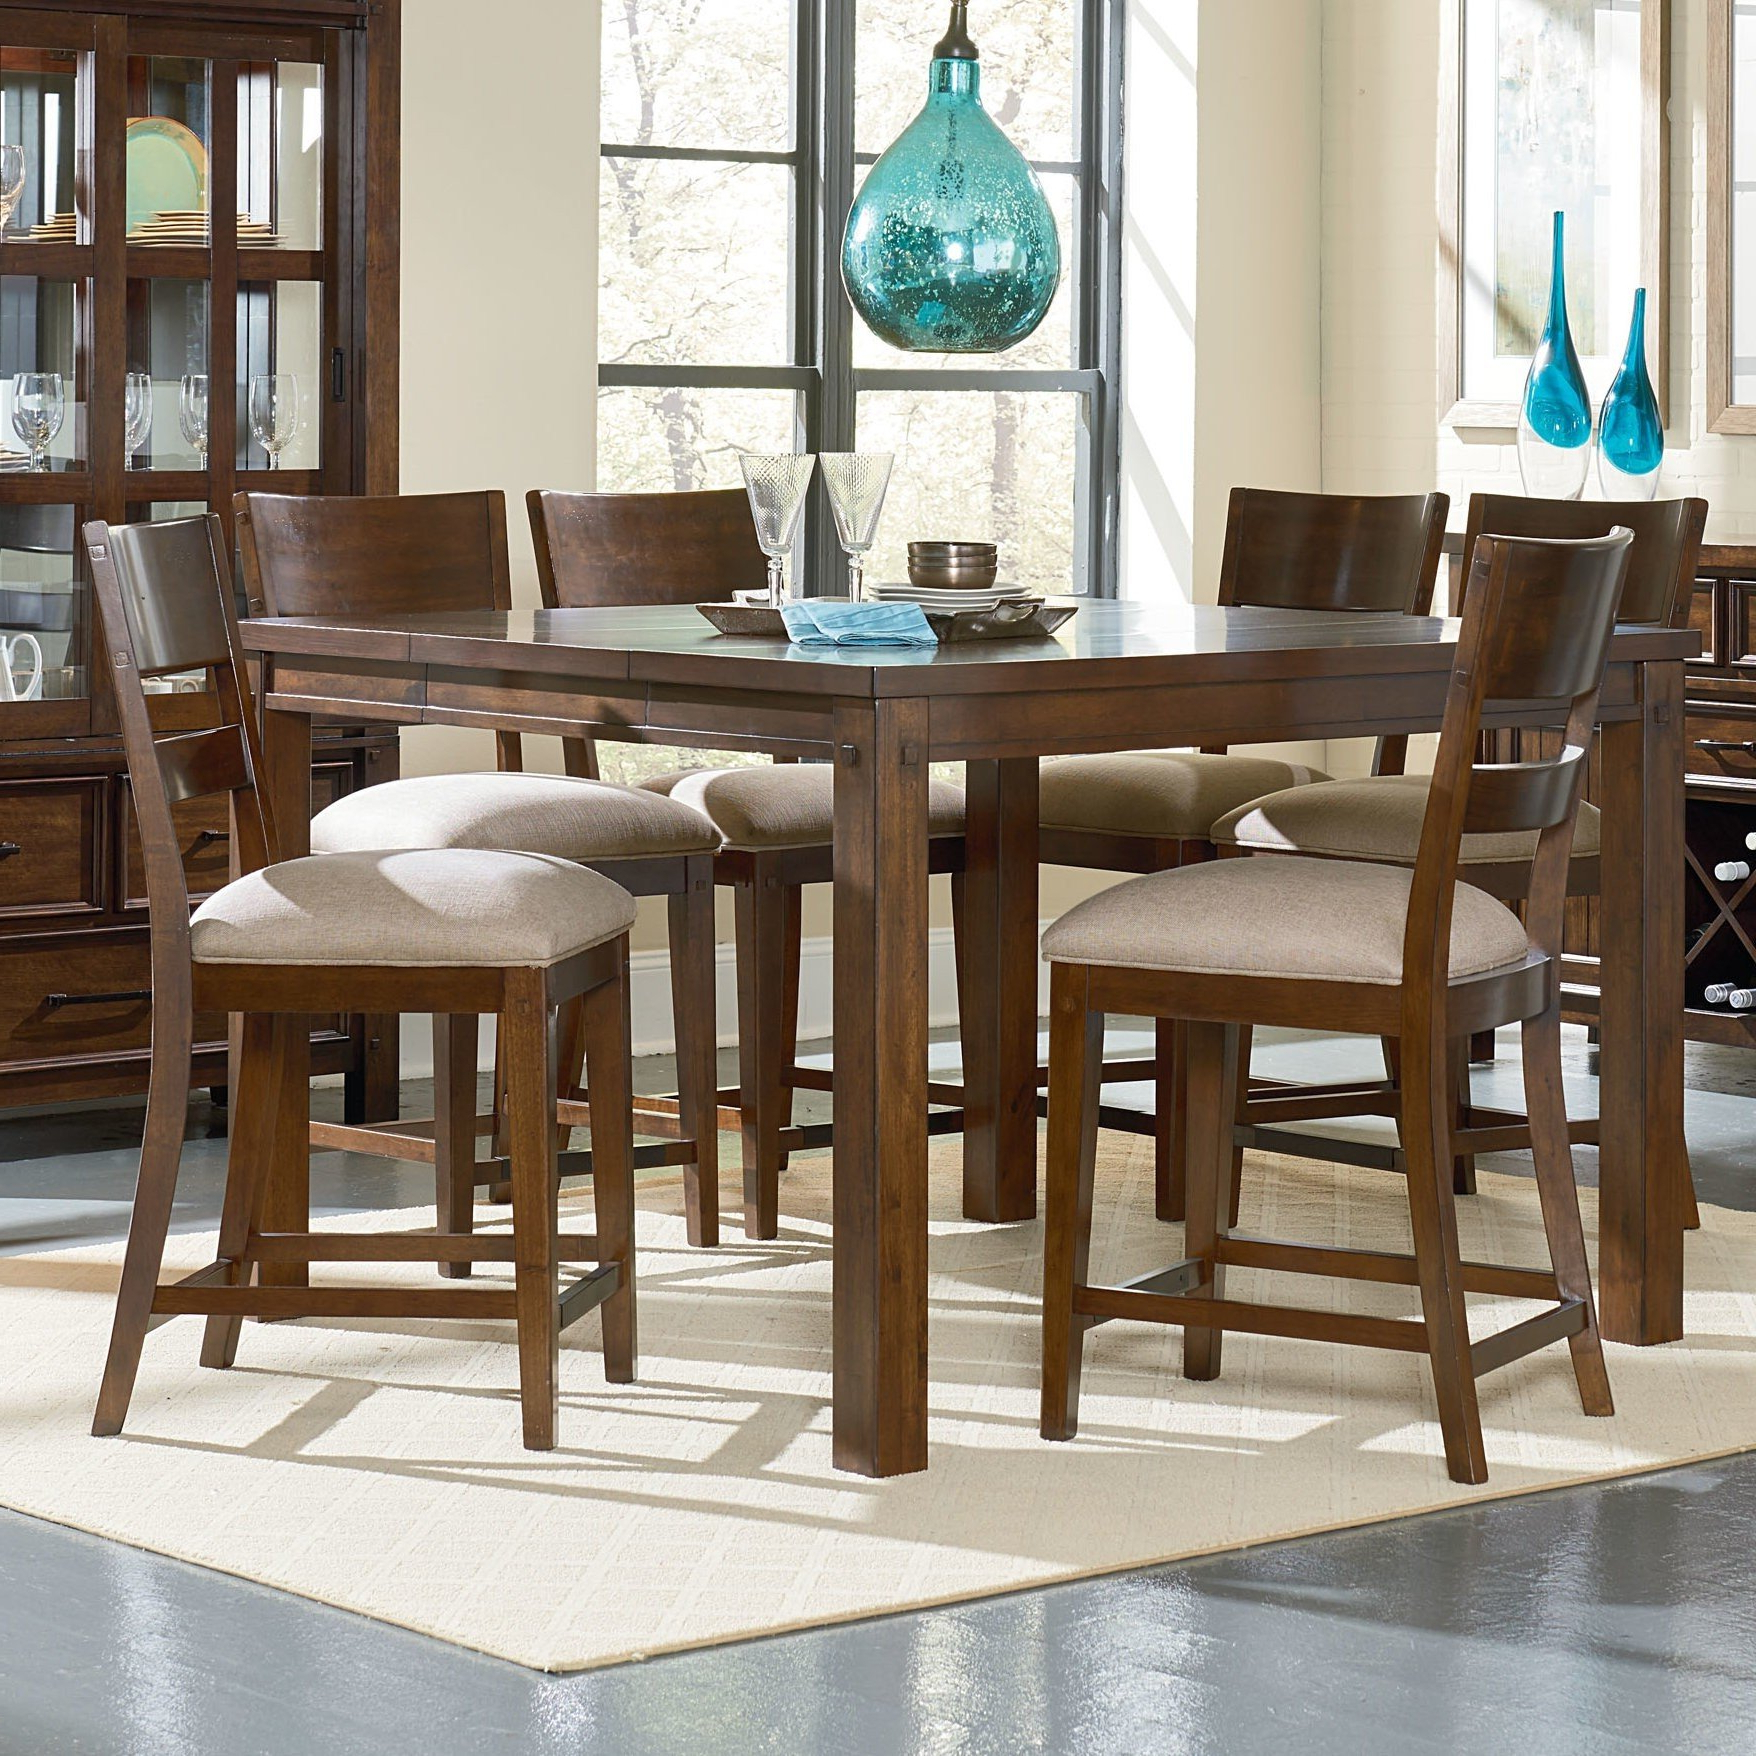 Contemporary 4 Seating Square Dining Tables Inside Preferred 50+ Square Dining Table For 6 You'll Love In 2020 – Visual Hunt (View 10 of 30)